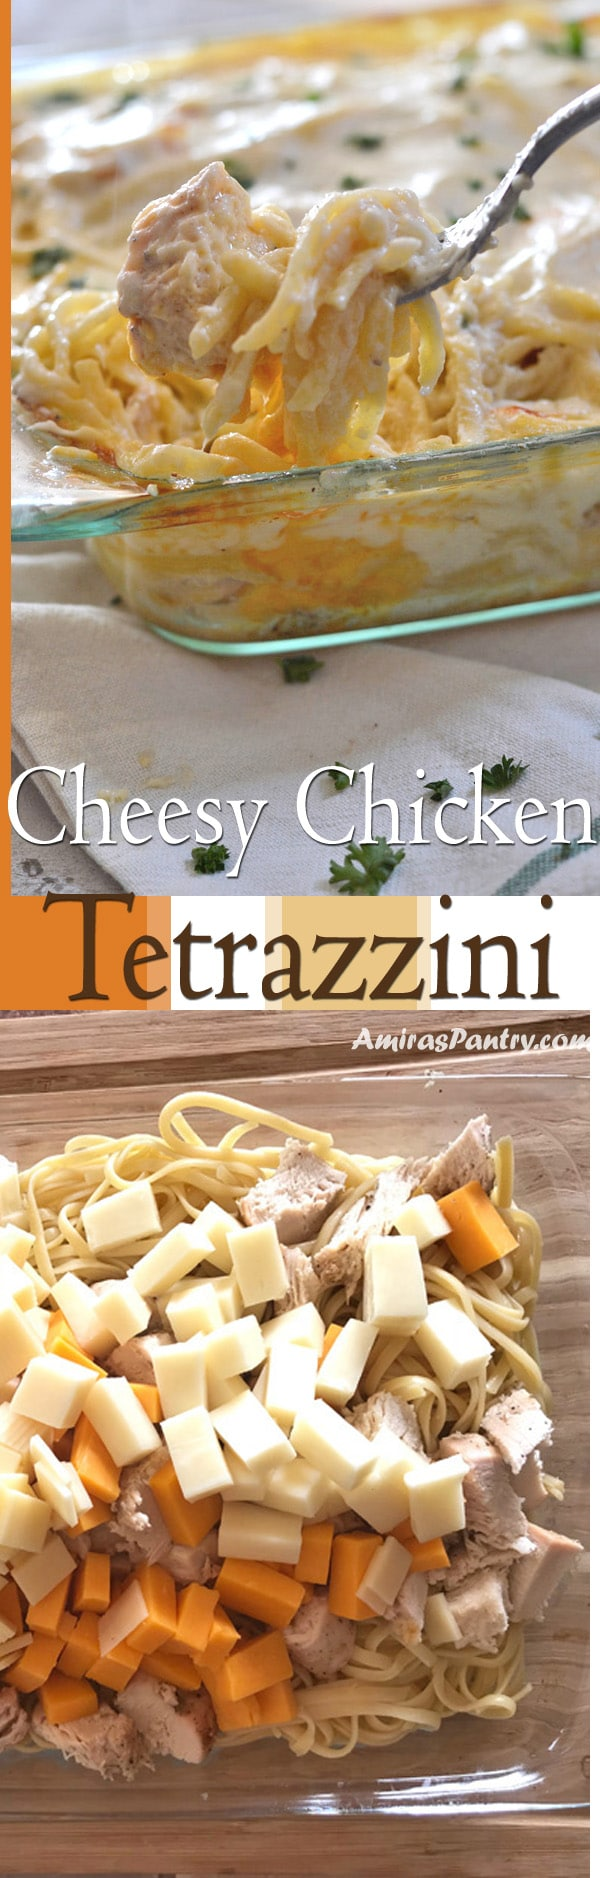 An inforgraph for Chicken Tetrazzini on a plate